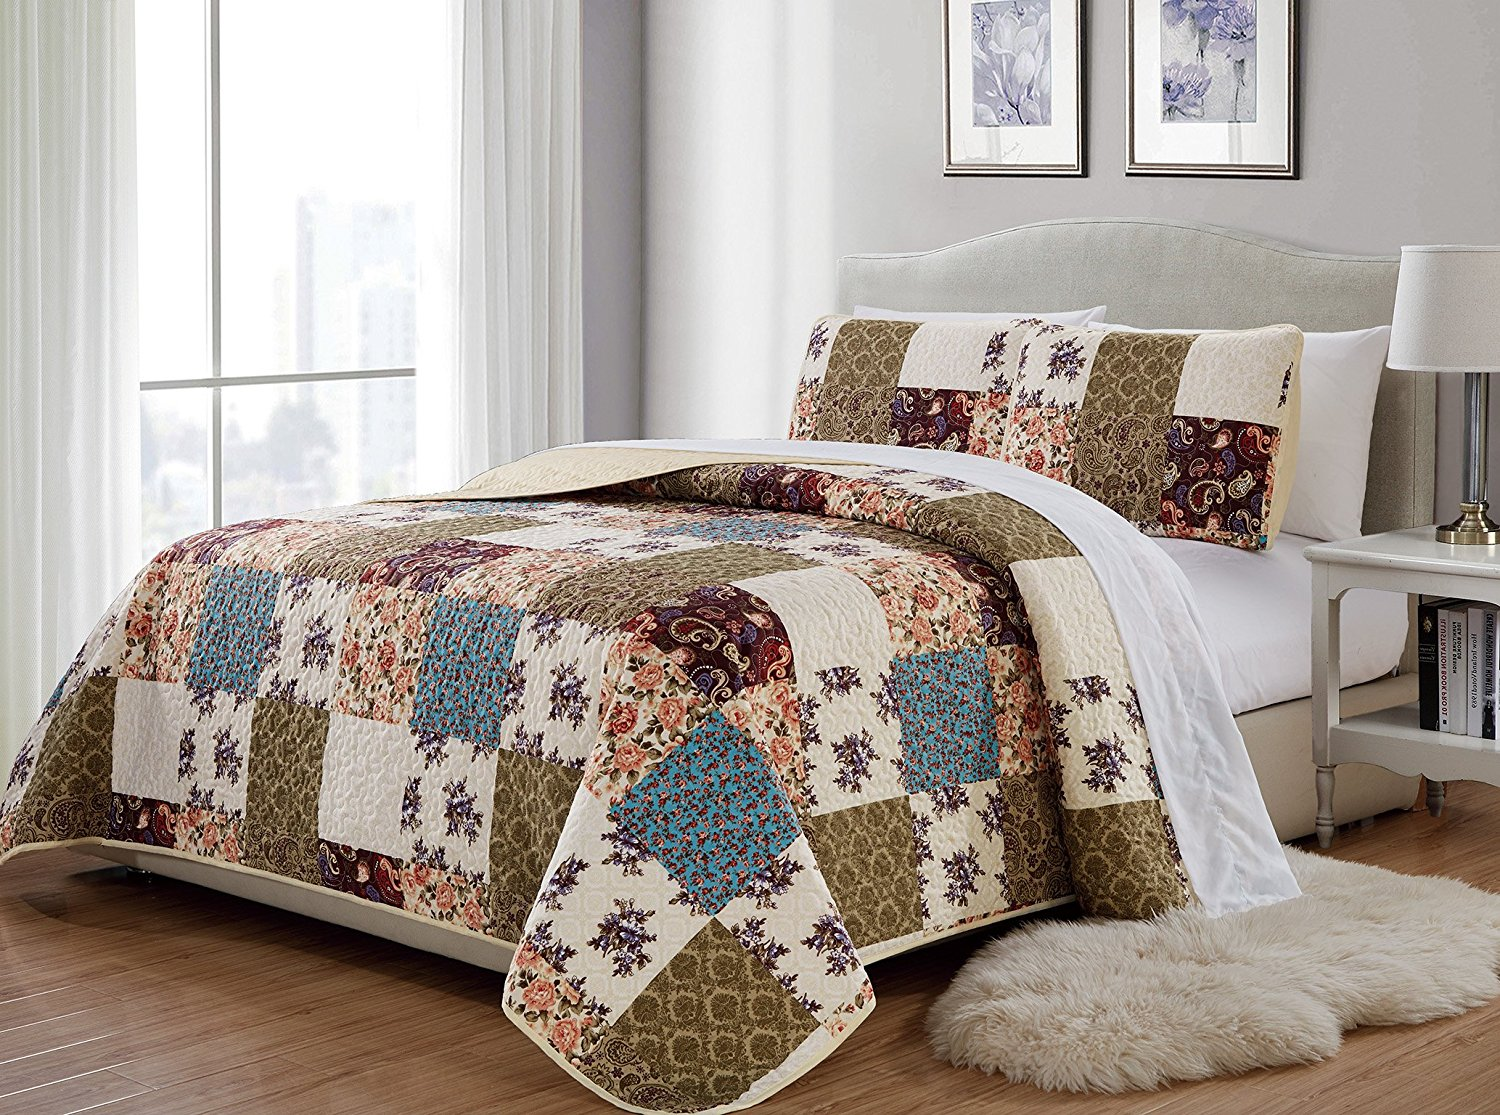 Fancy Collection 2 Pc Twin/Twin Extra Long Quilted Bedspread Floral Beige Green Purple Taupe Blue Over Size New